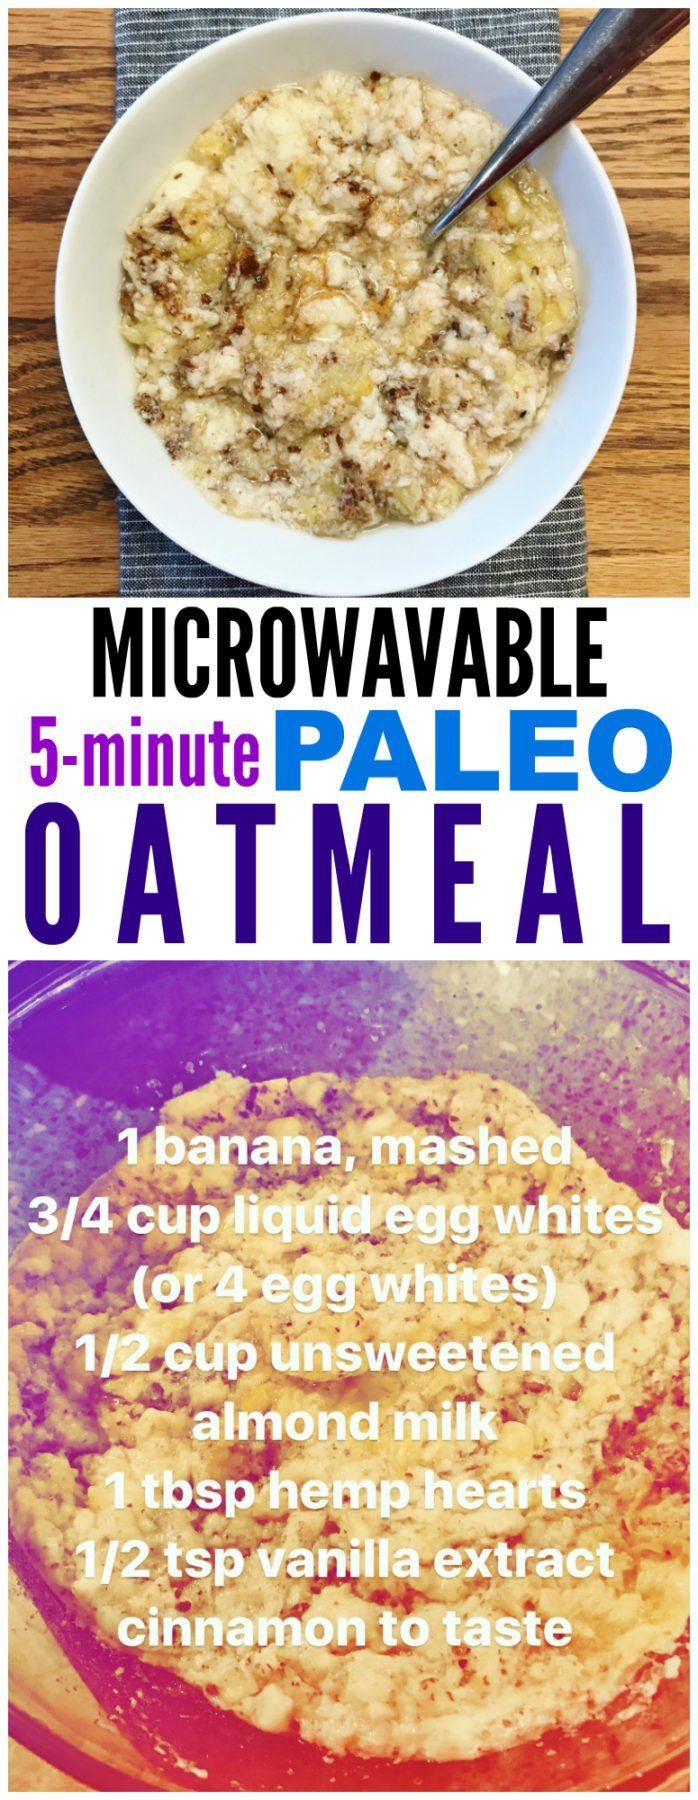 Monday In Meals + Microwavable Paleo Oatmeal http://carrotsncake.com/2017/03/monday-meals-microwavable-paleo-oatmeal.html